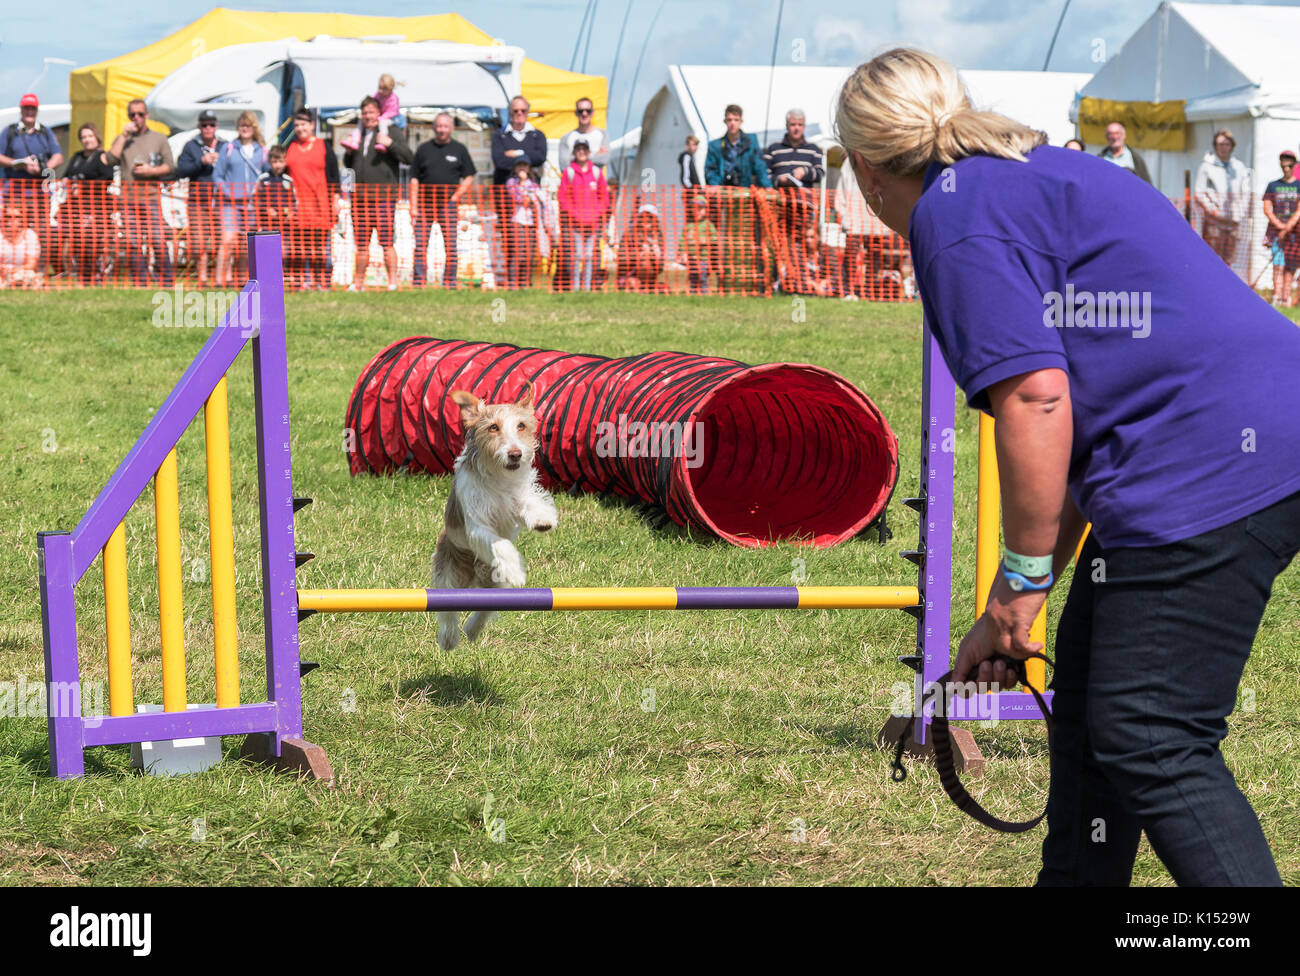 a terrier type dog jumps a hurdle at a dog agility, competition. - Stock Image